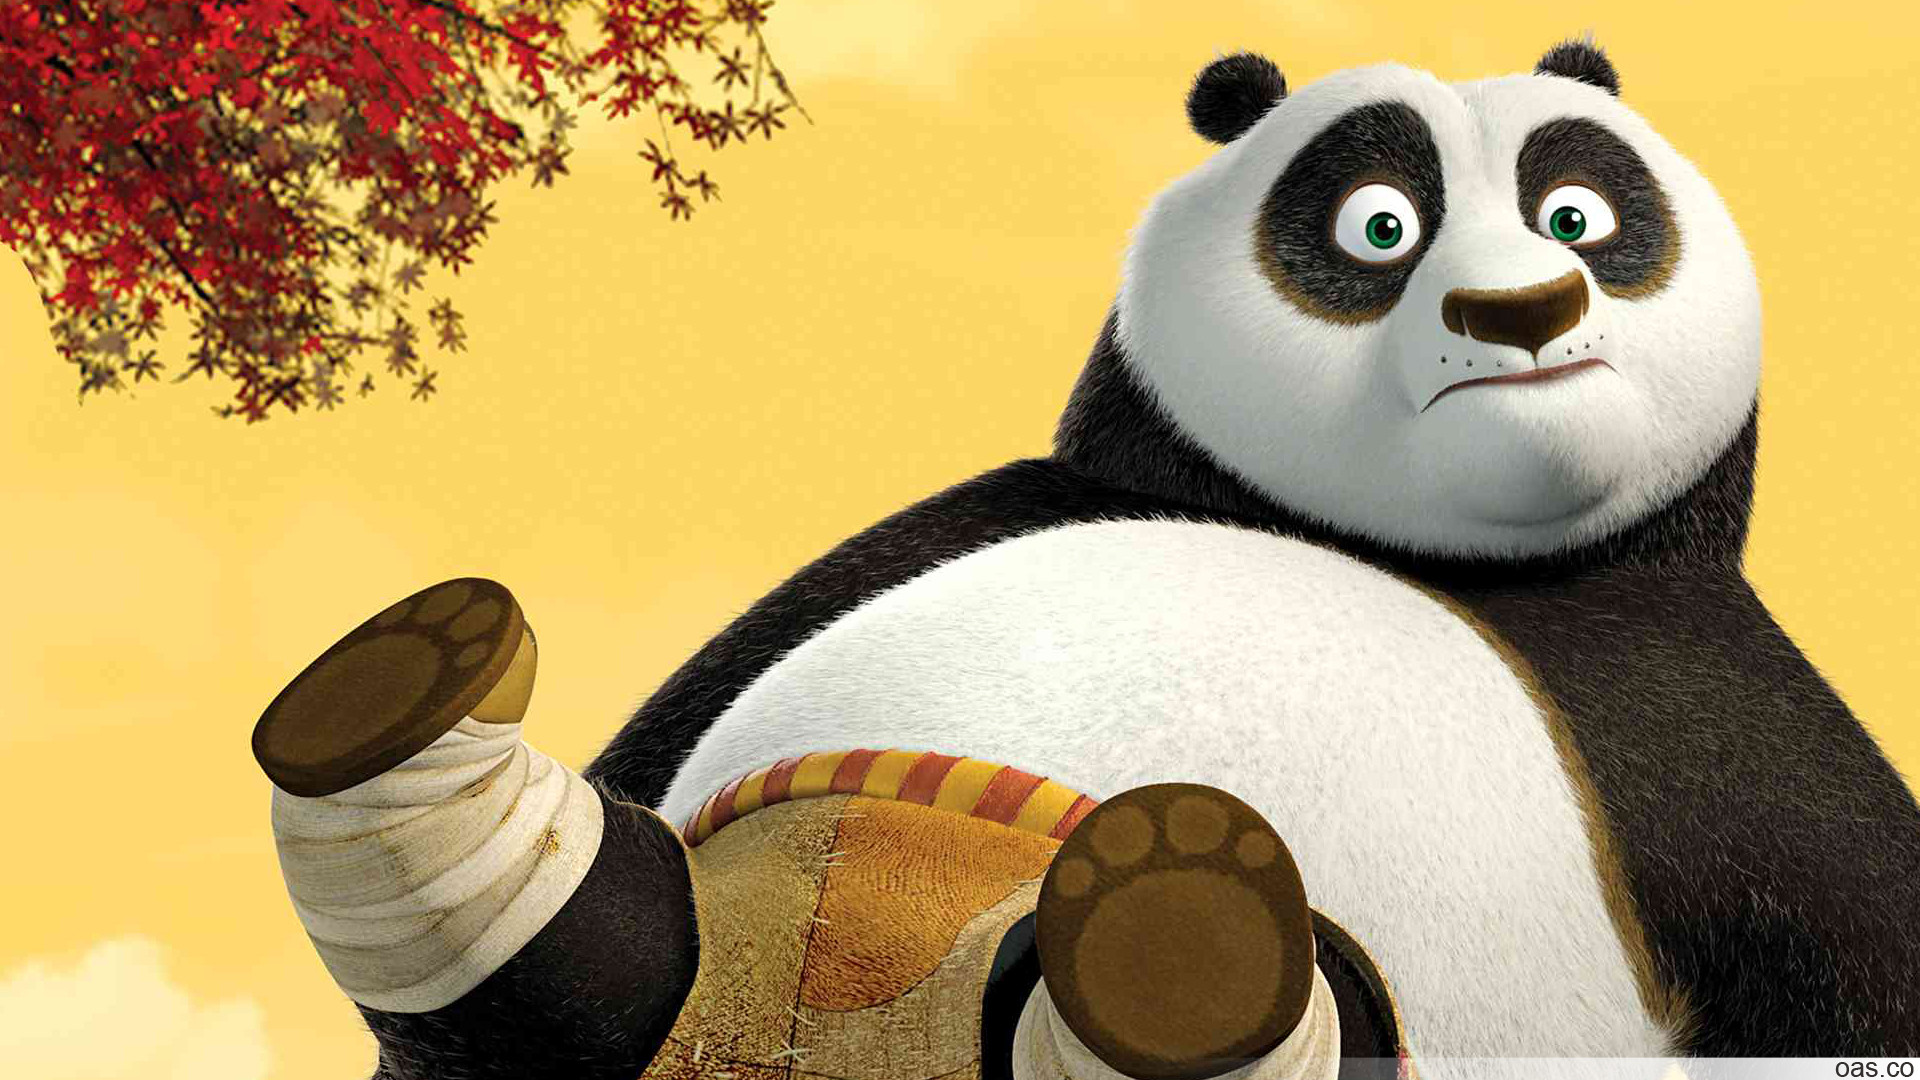 Cartoon Panda Wallpaper 71 Images